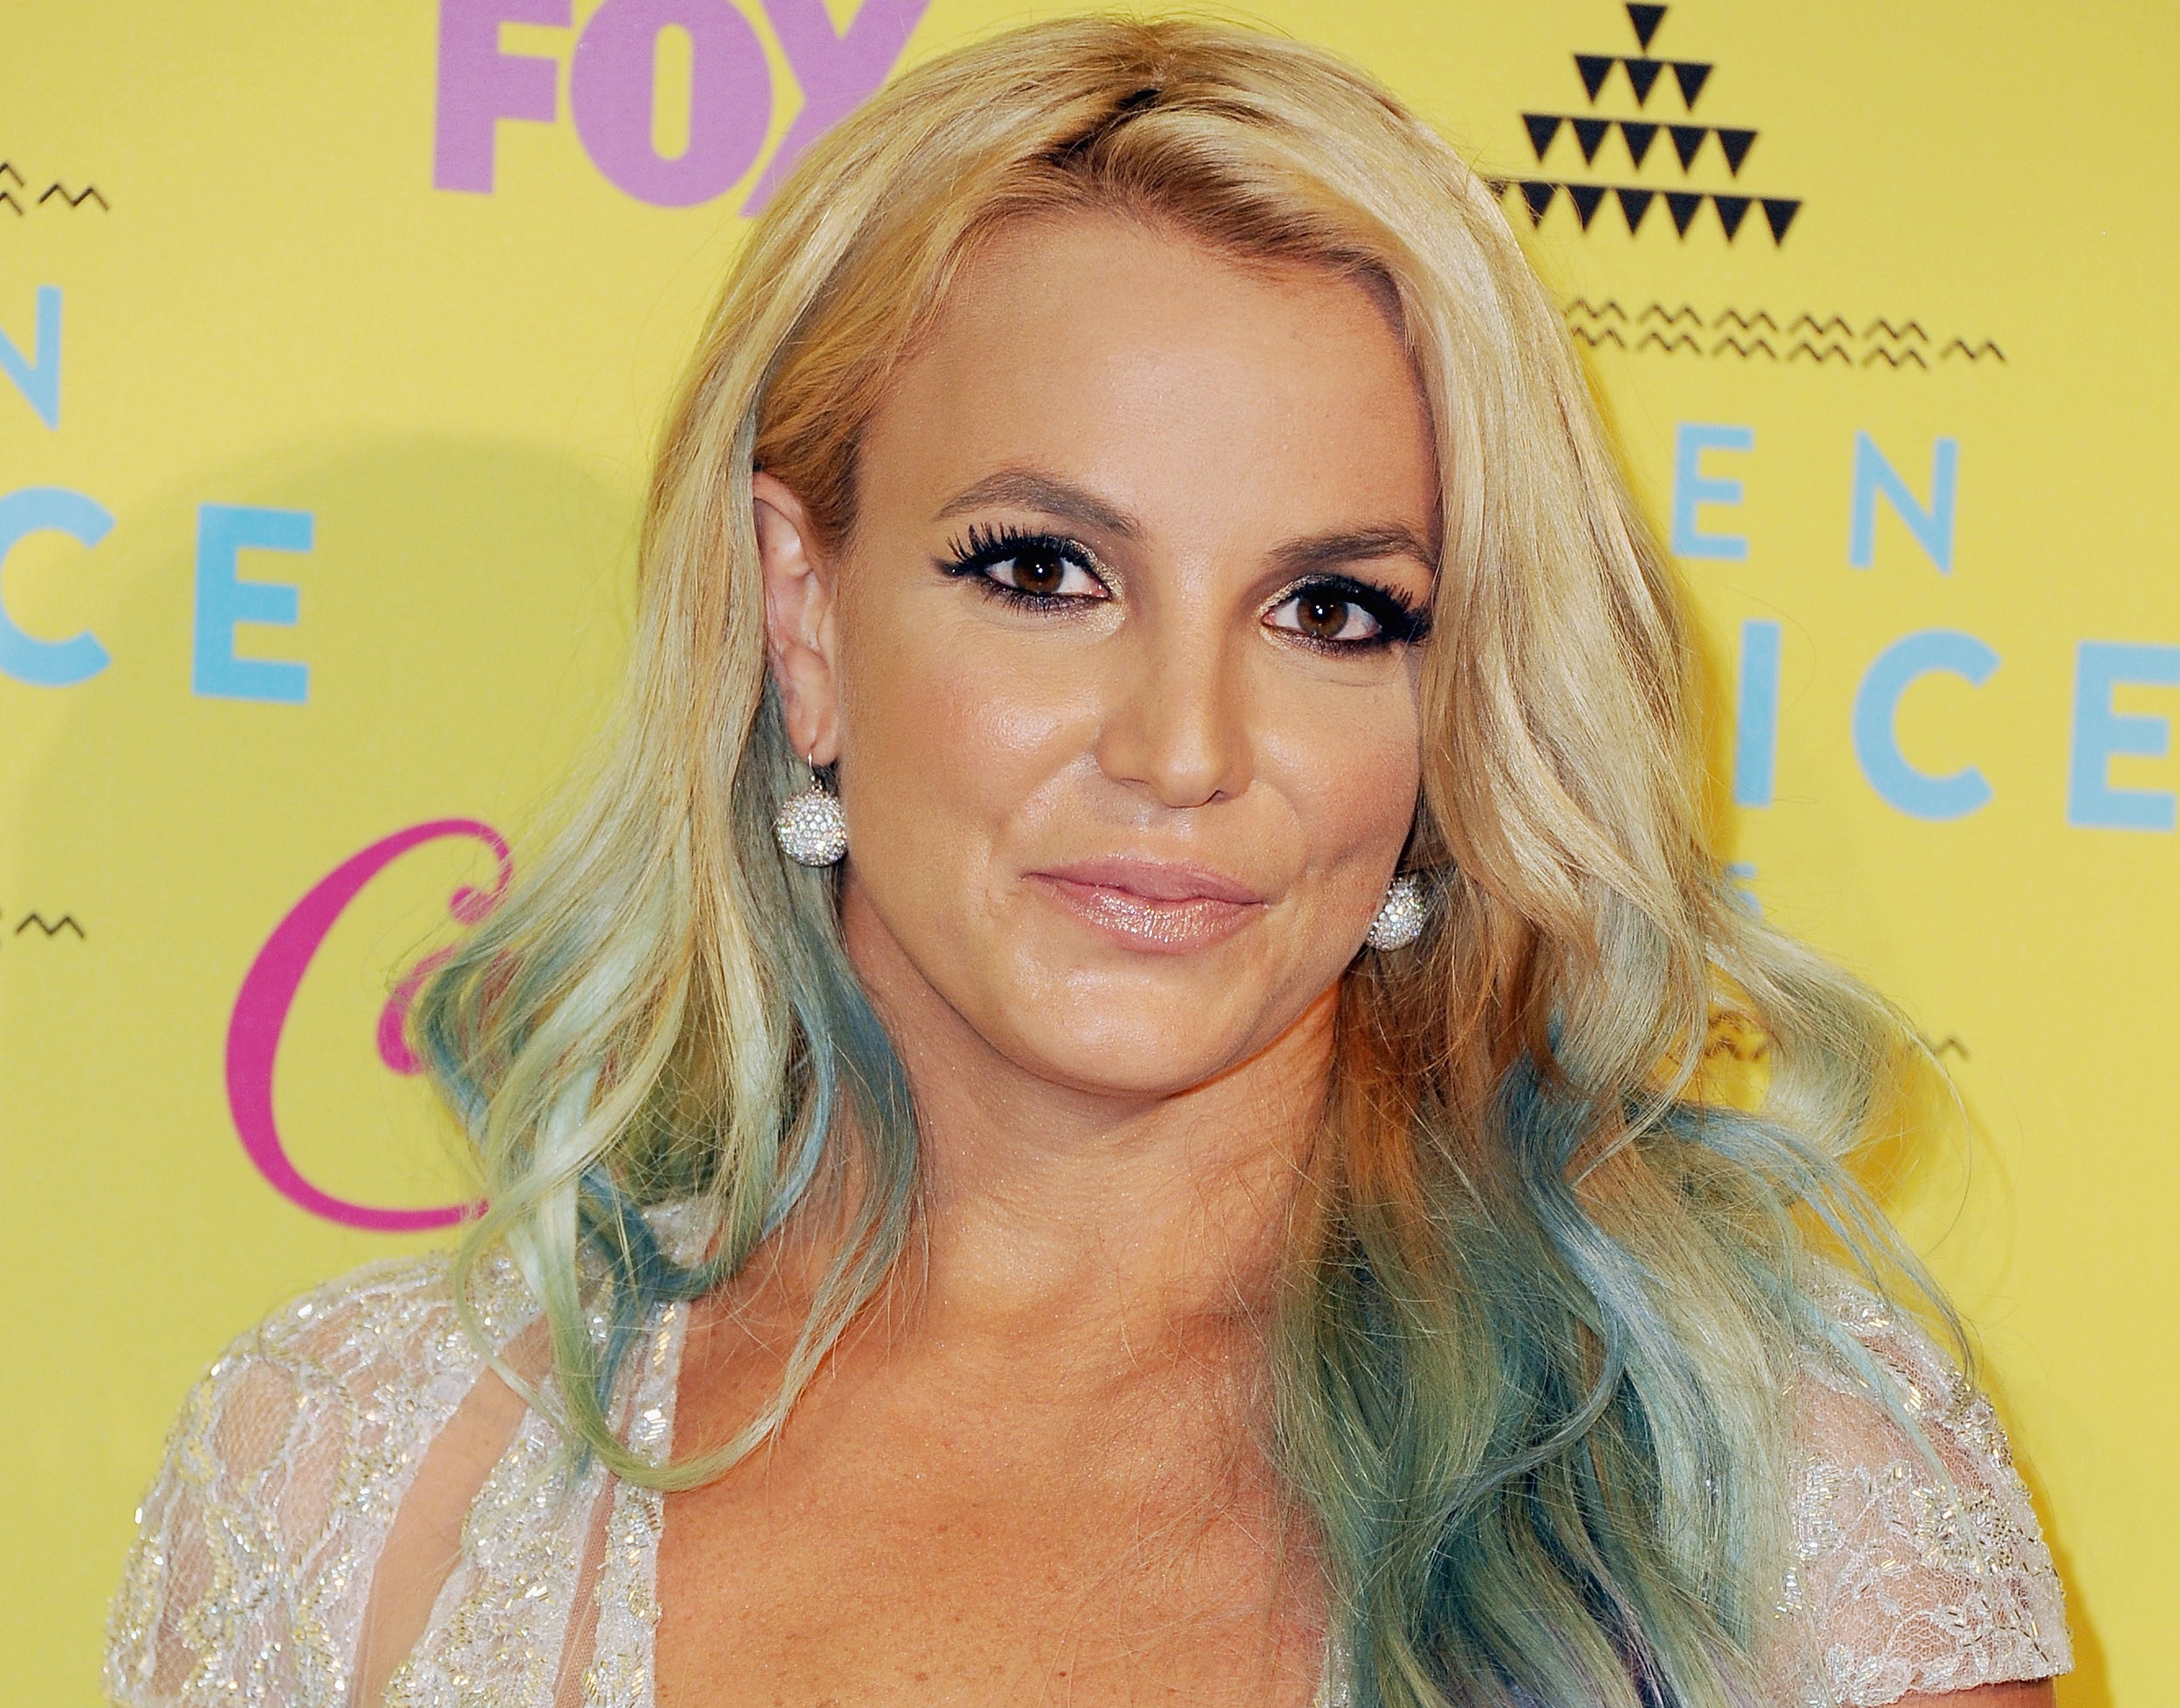 Britney smiles softly while showing off blue streaks in her hair